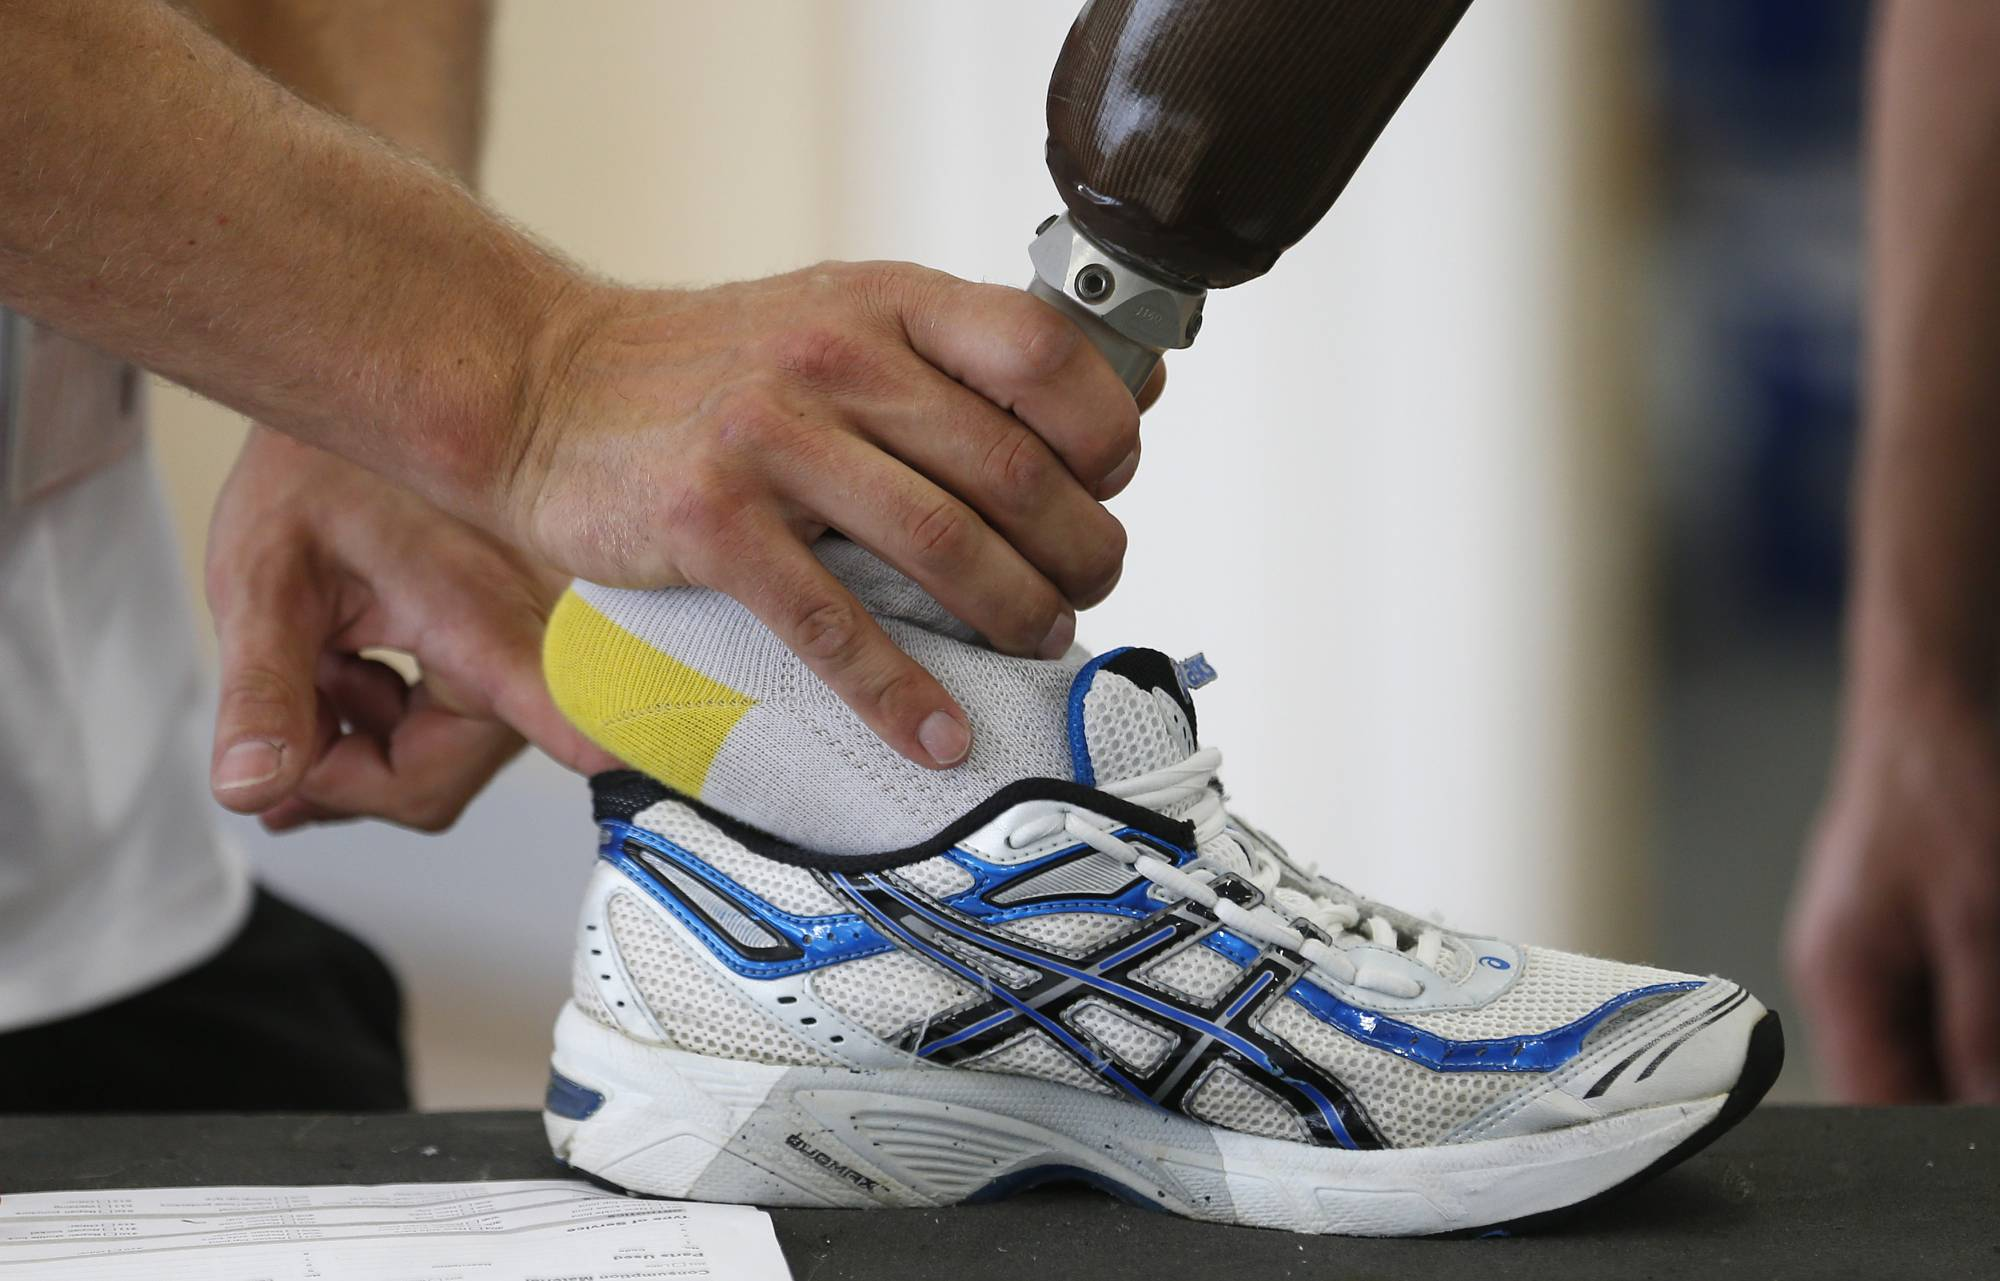 A technician fits a prosthetic foot into a trainer in an Ottobock workshop at the London athletes' village in 2012. | REUTERS